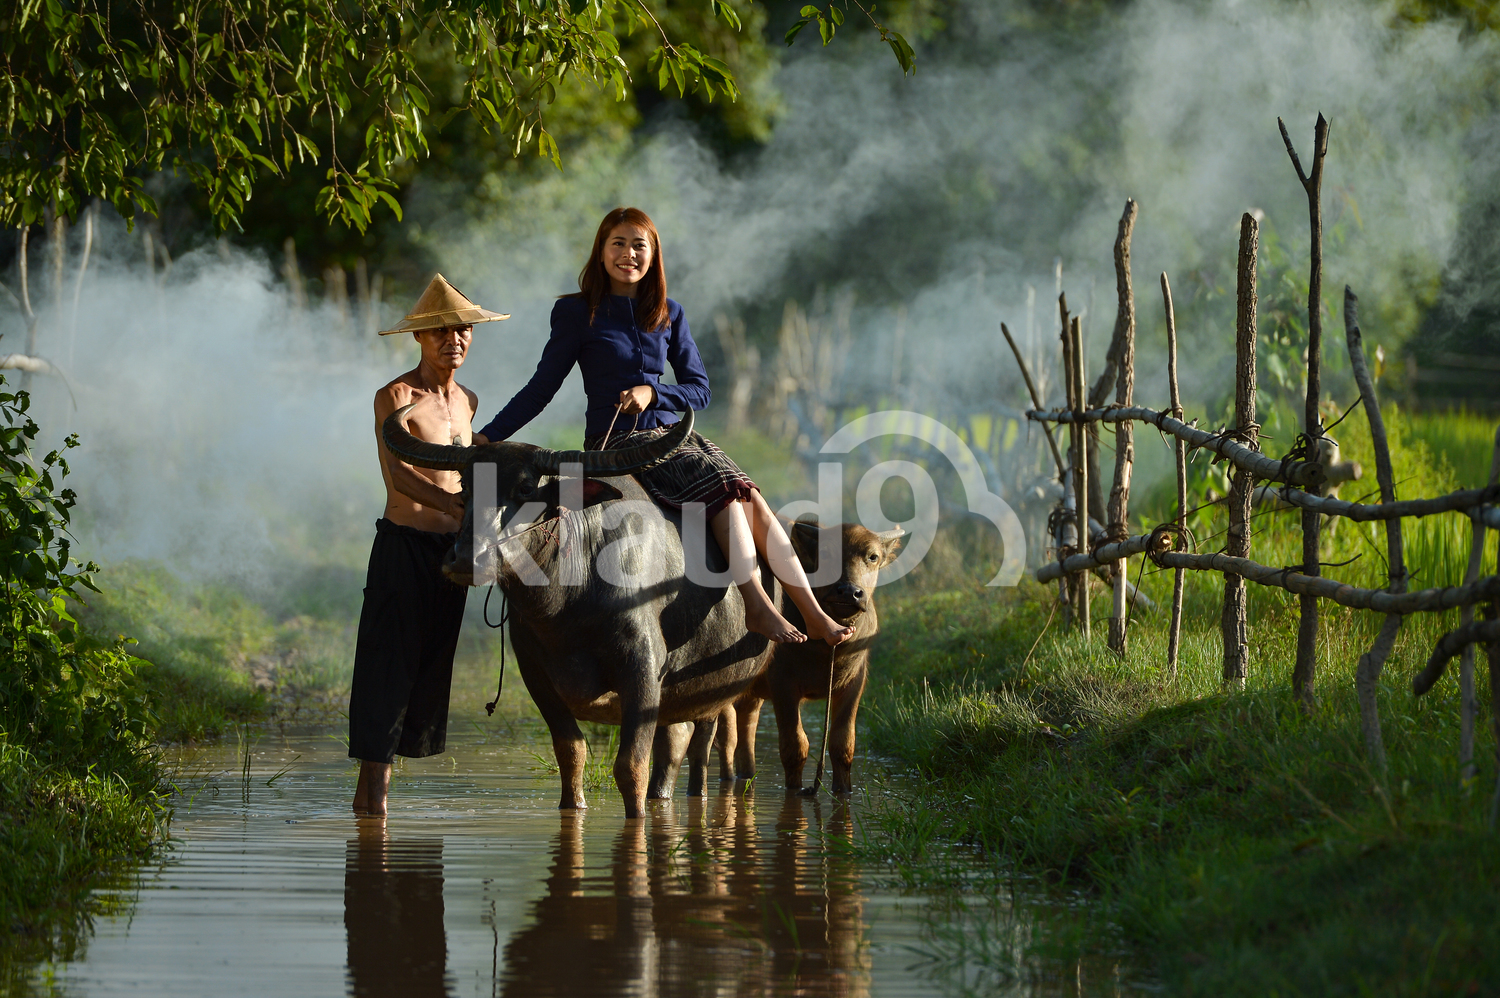 Farmers and buffalo in Thailand